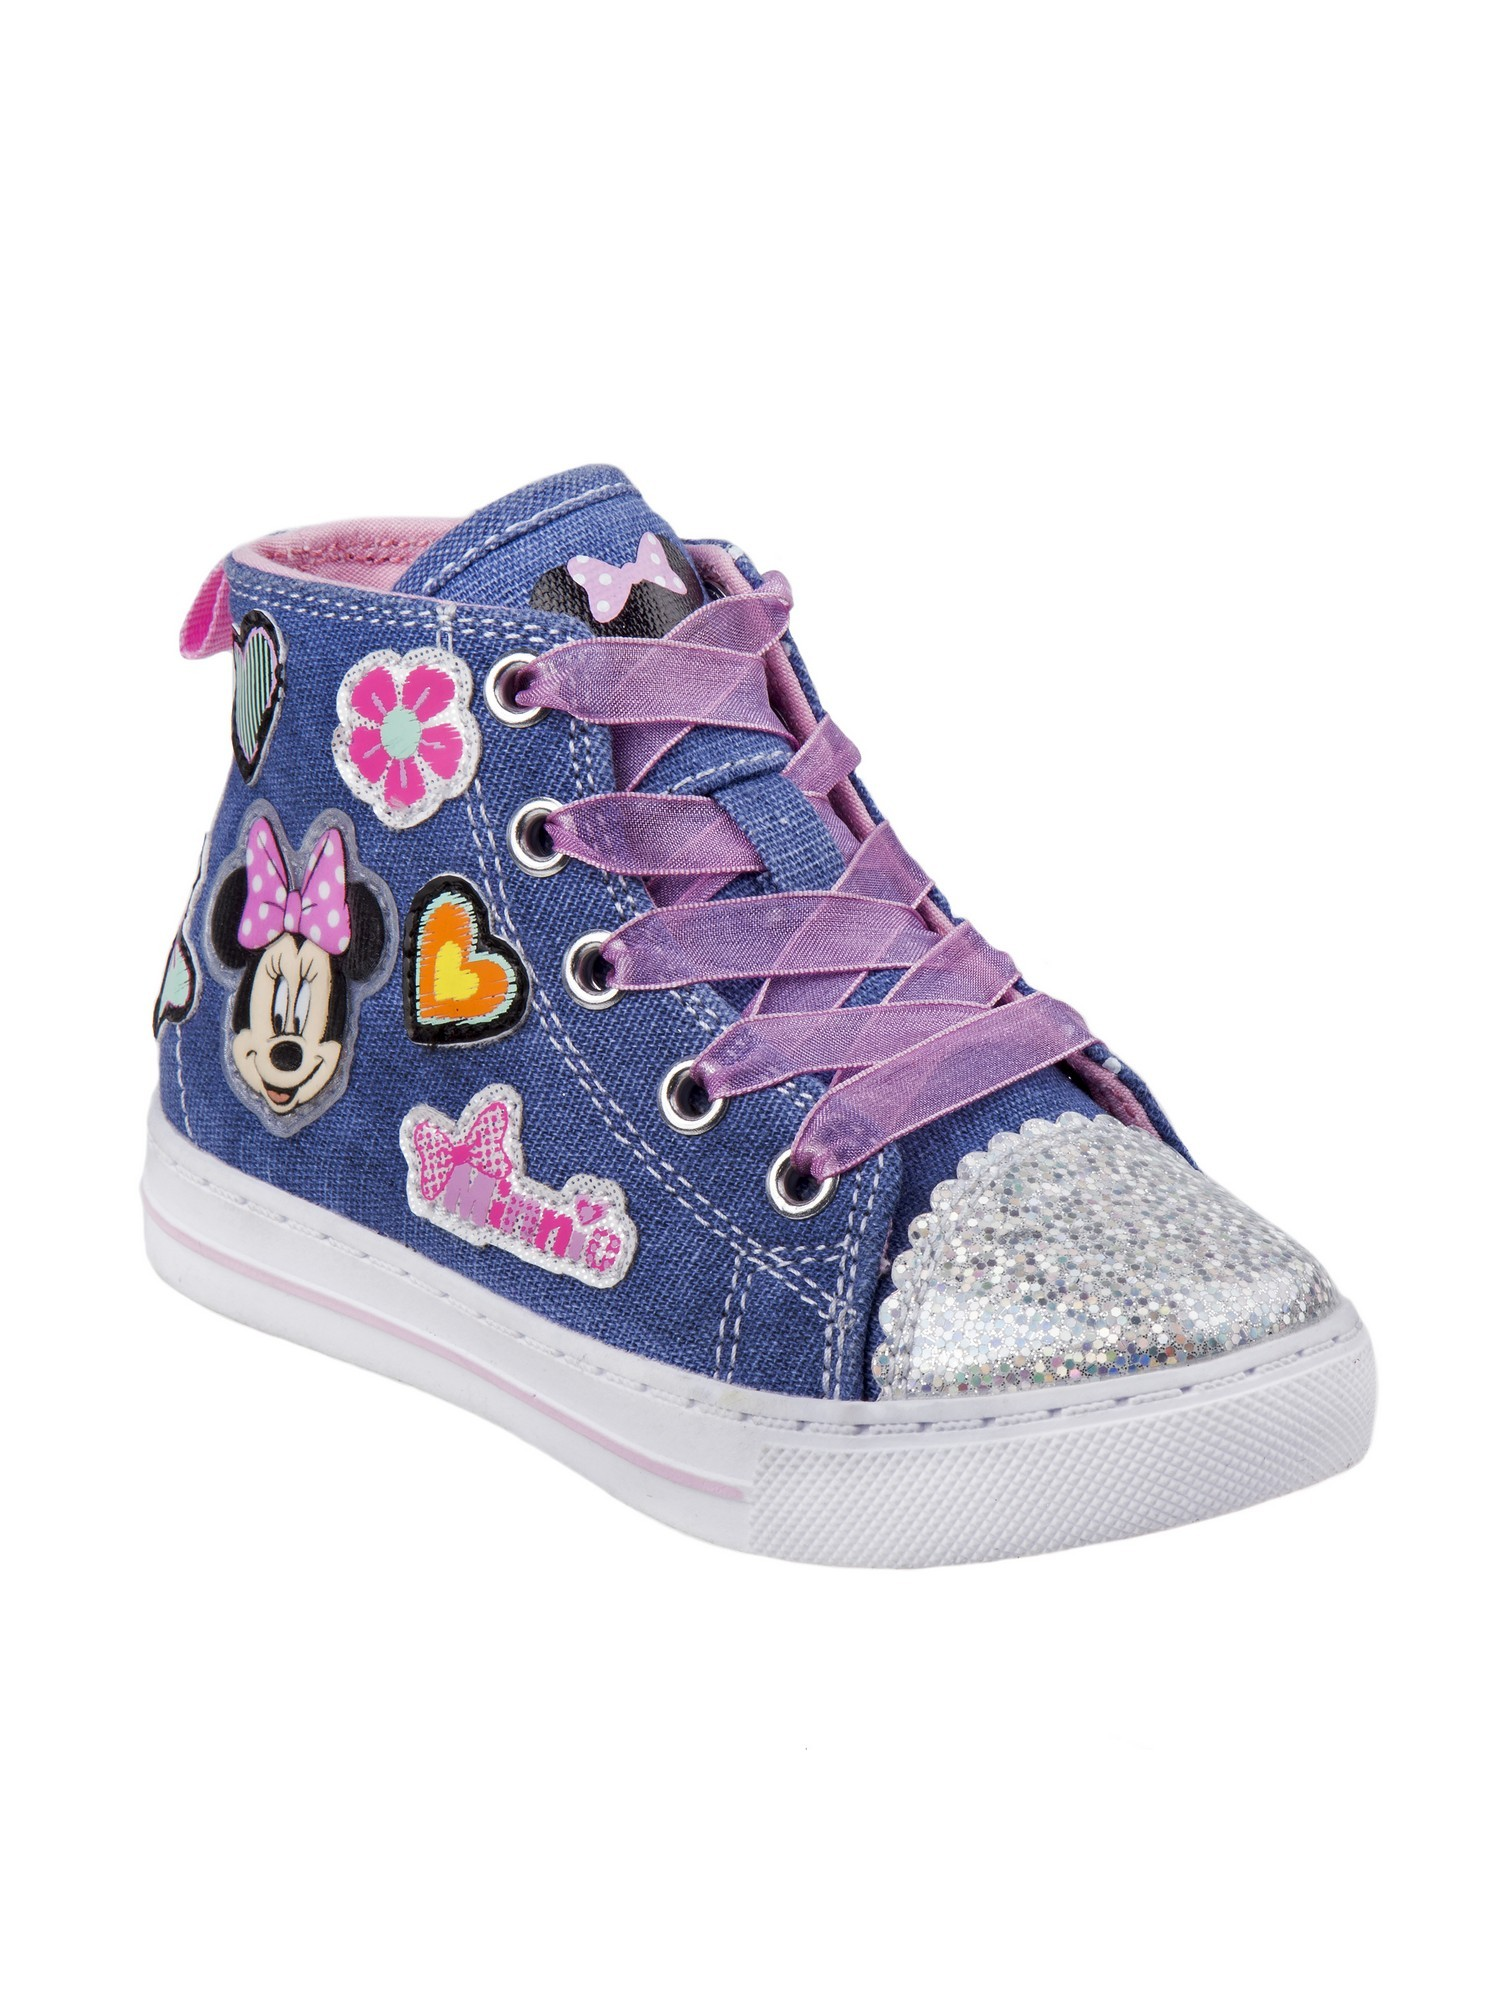 Girls' Josmo O-CH17788 Minnie Mouse High Top Canvas Sneaker by Disney